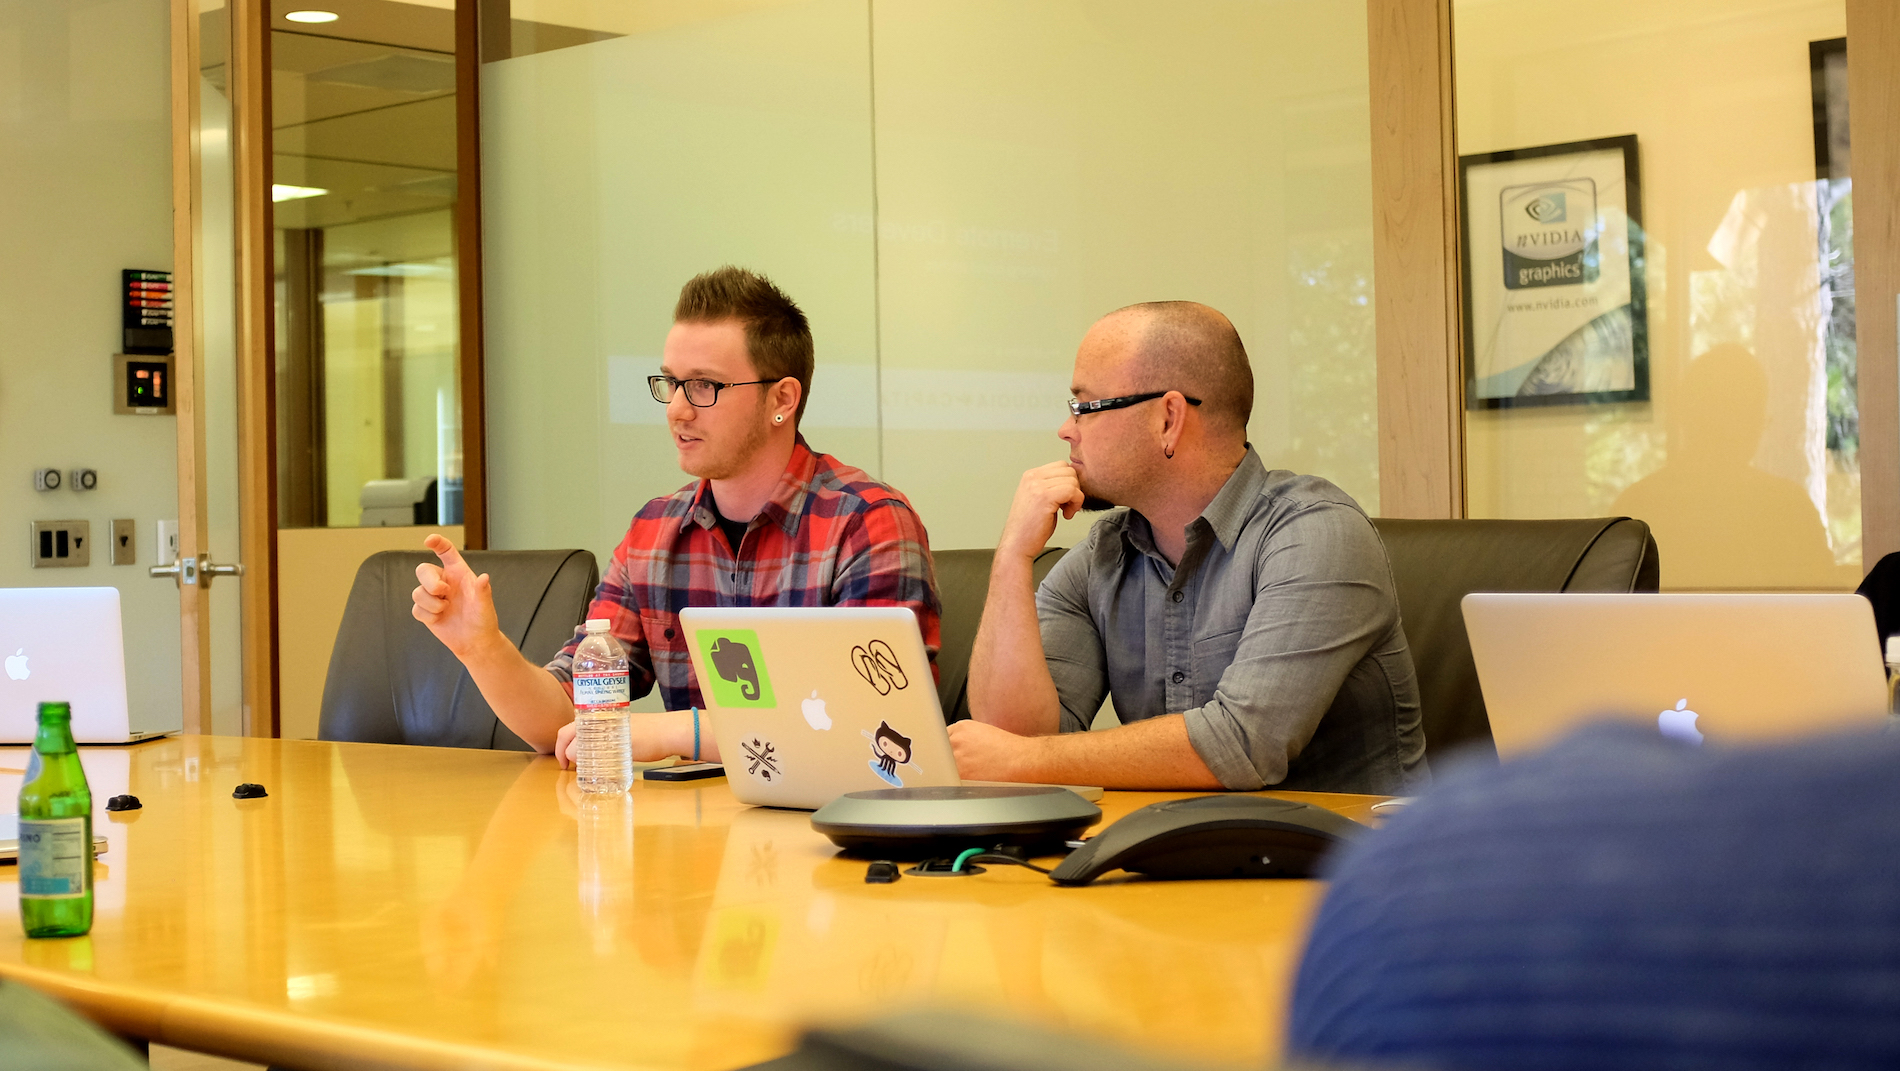 Gavin Vickery and I prepping for the Sequoia pitch